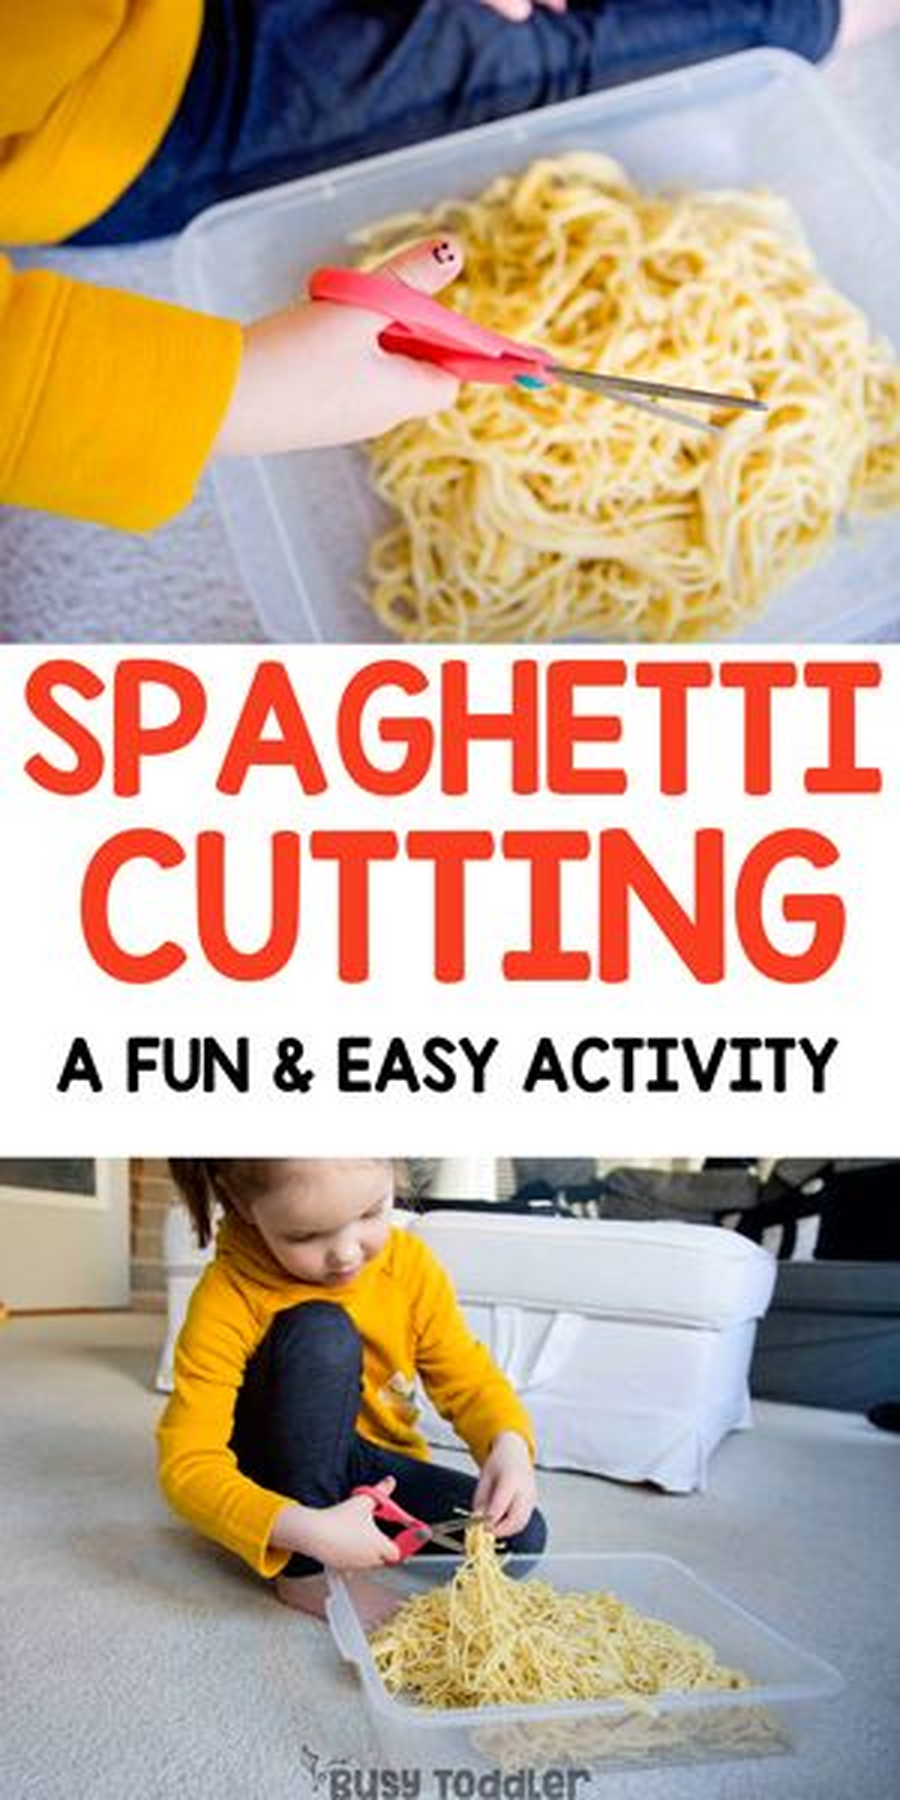 Cook some spaghetti and practice cutting it with some safe scissors.